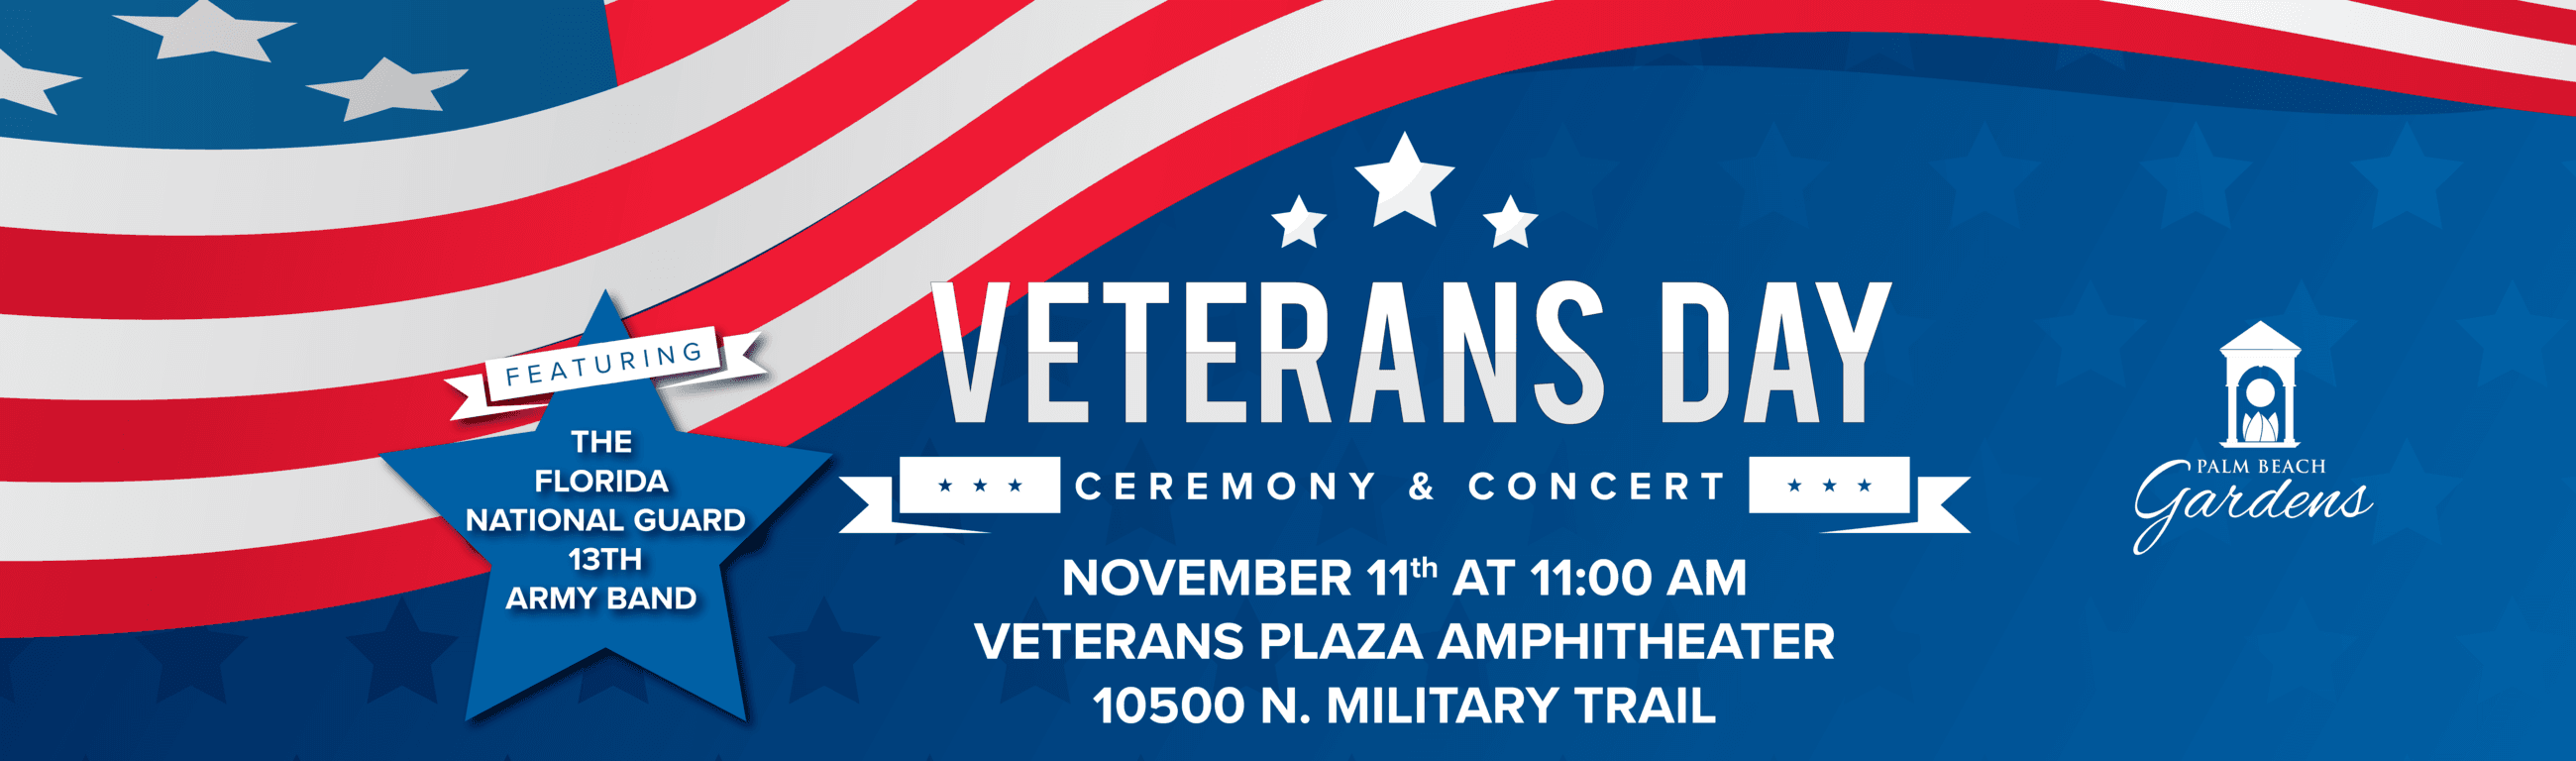 2019 Veterans Day Ceremony & Concert. 11/11 at 11 a.m.